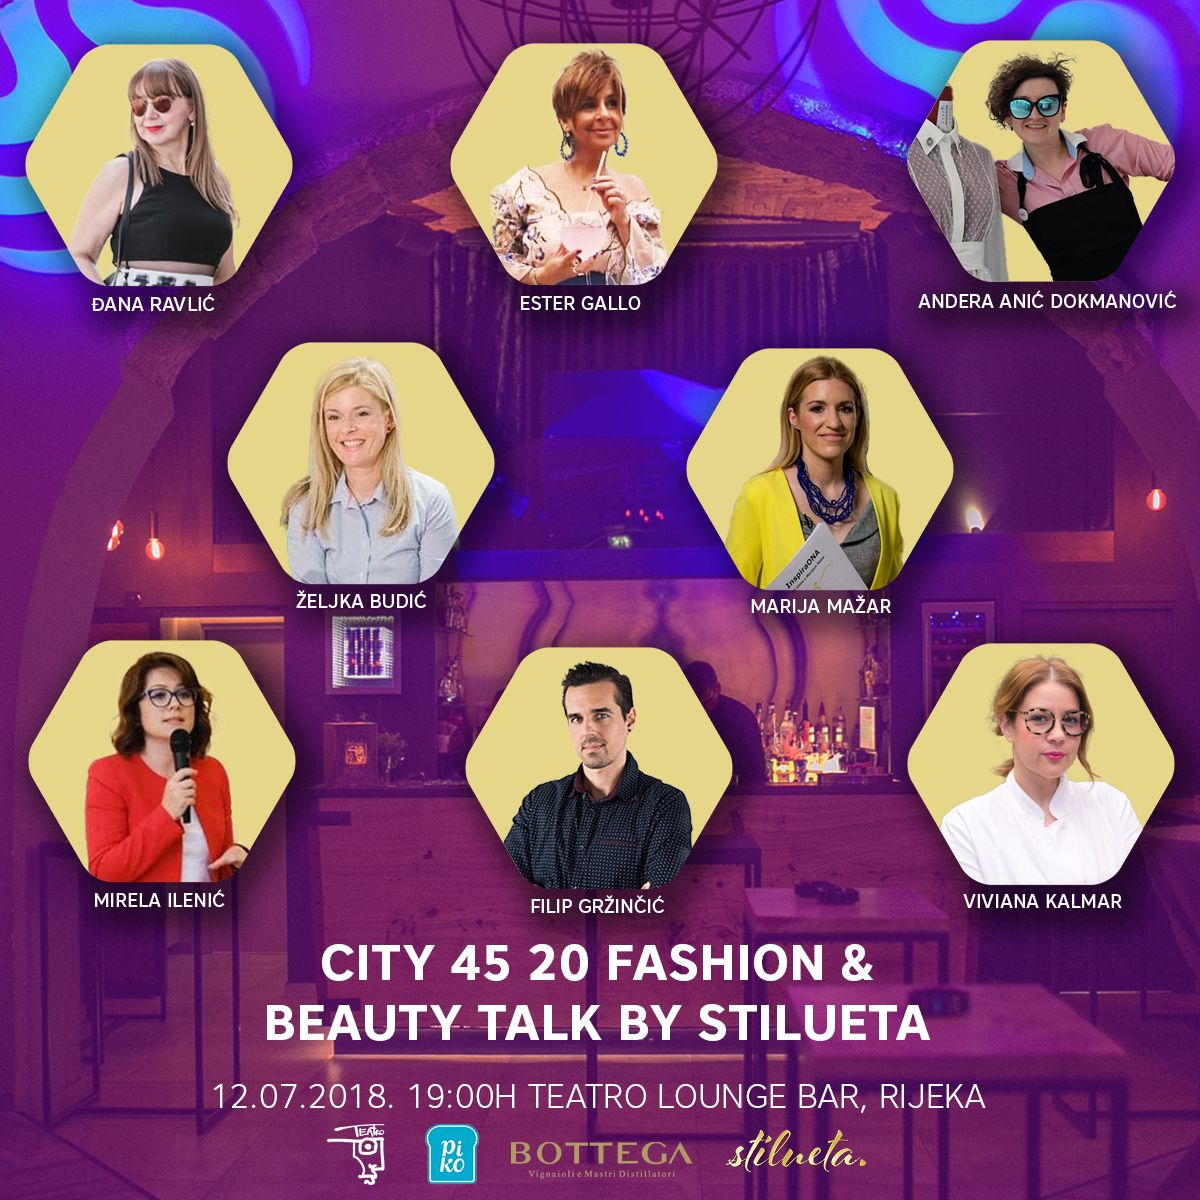 Večeri mode i ljepote CITY 45 20 prethodi panel diskusija u Teatro Lounge Baru!